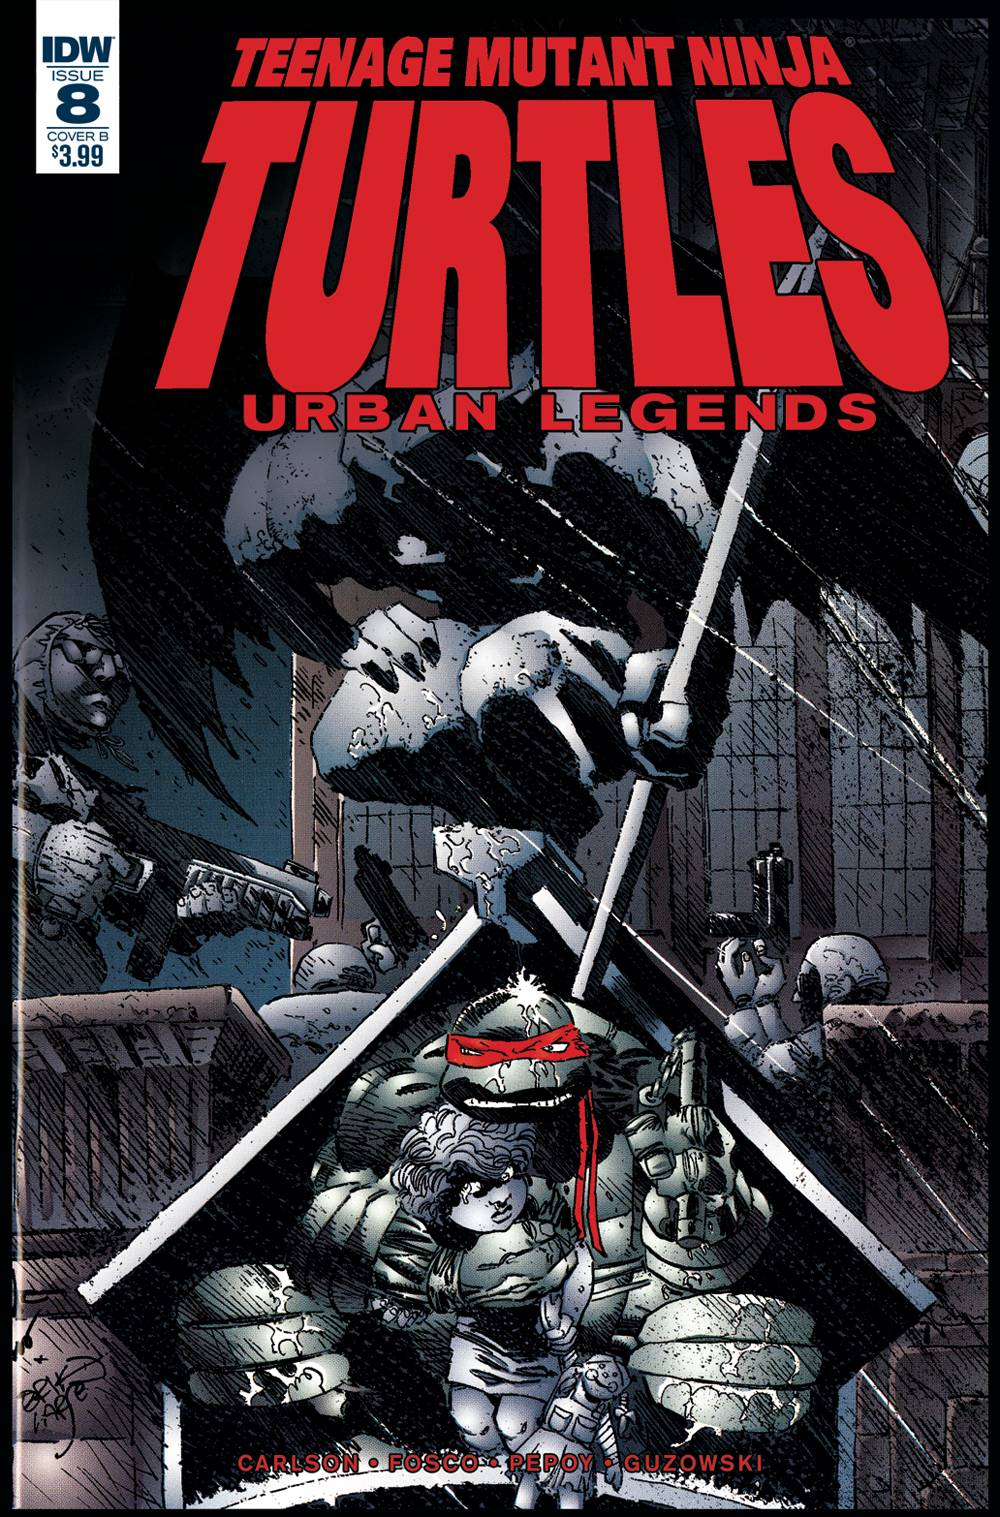 TMNT URBAN LEGENDS 8 CVR B FOSCO & LARSEN.jpg